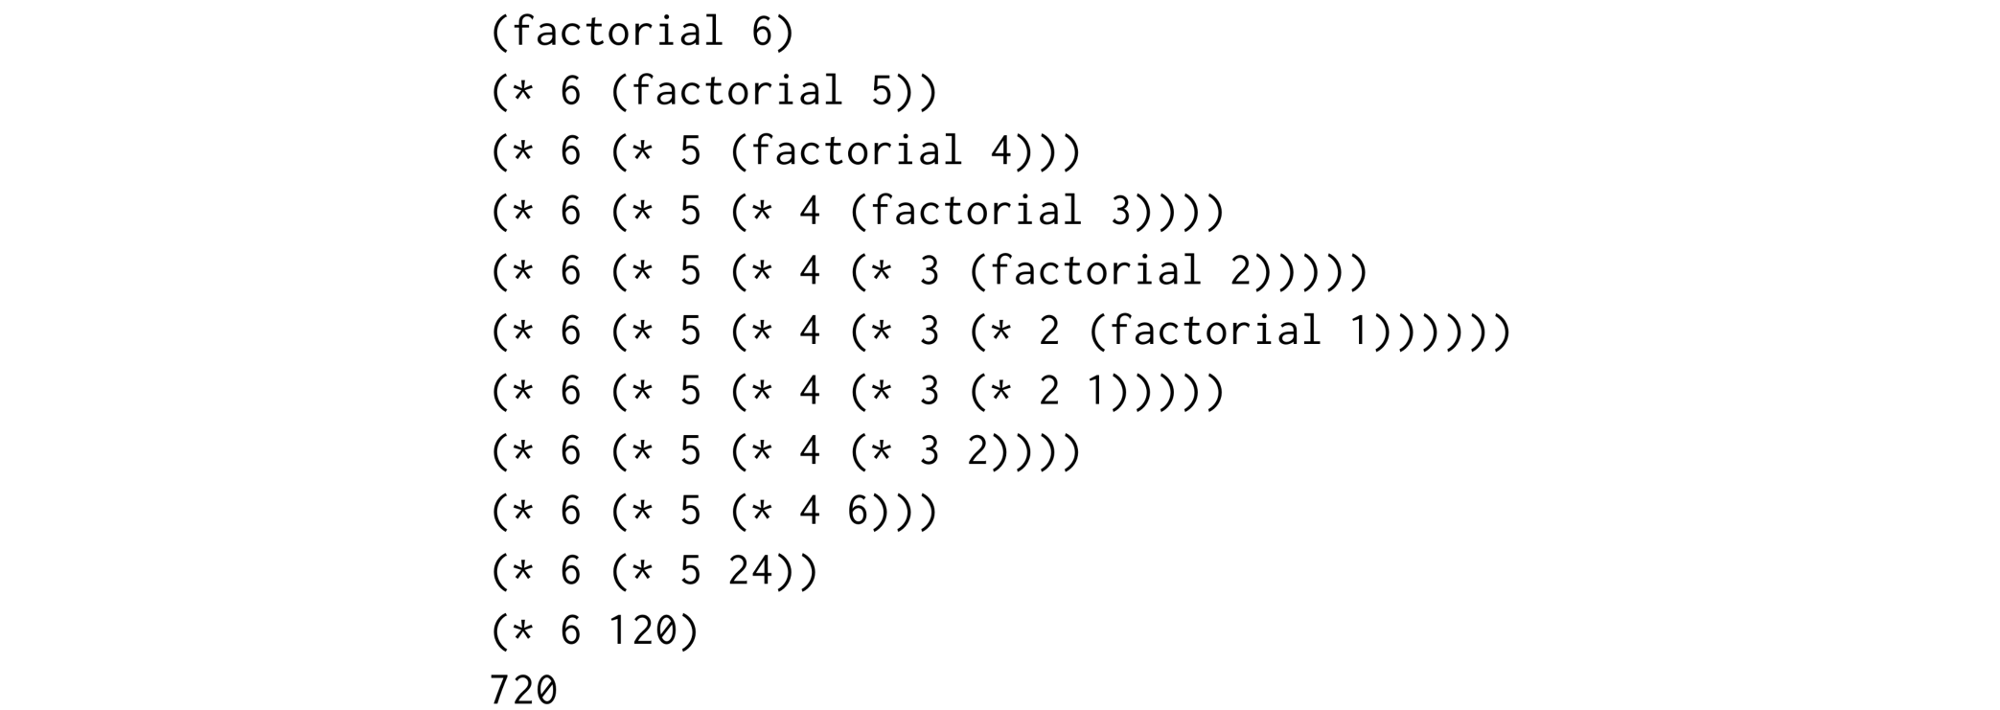 Factorial of 6 is decomposed into 6 times factorial of 5, which is decomposed into 5 times factorial of 4, and so on...